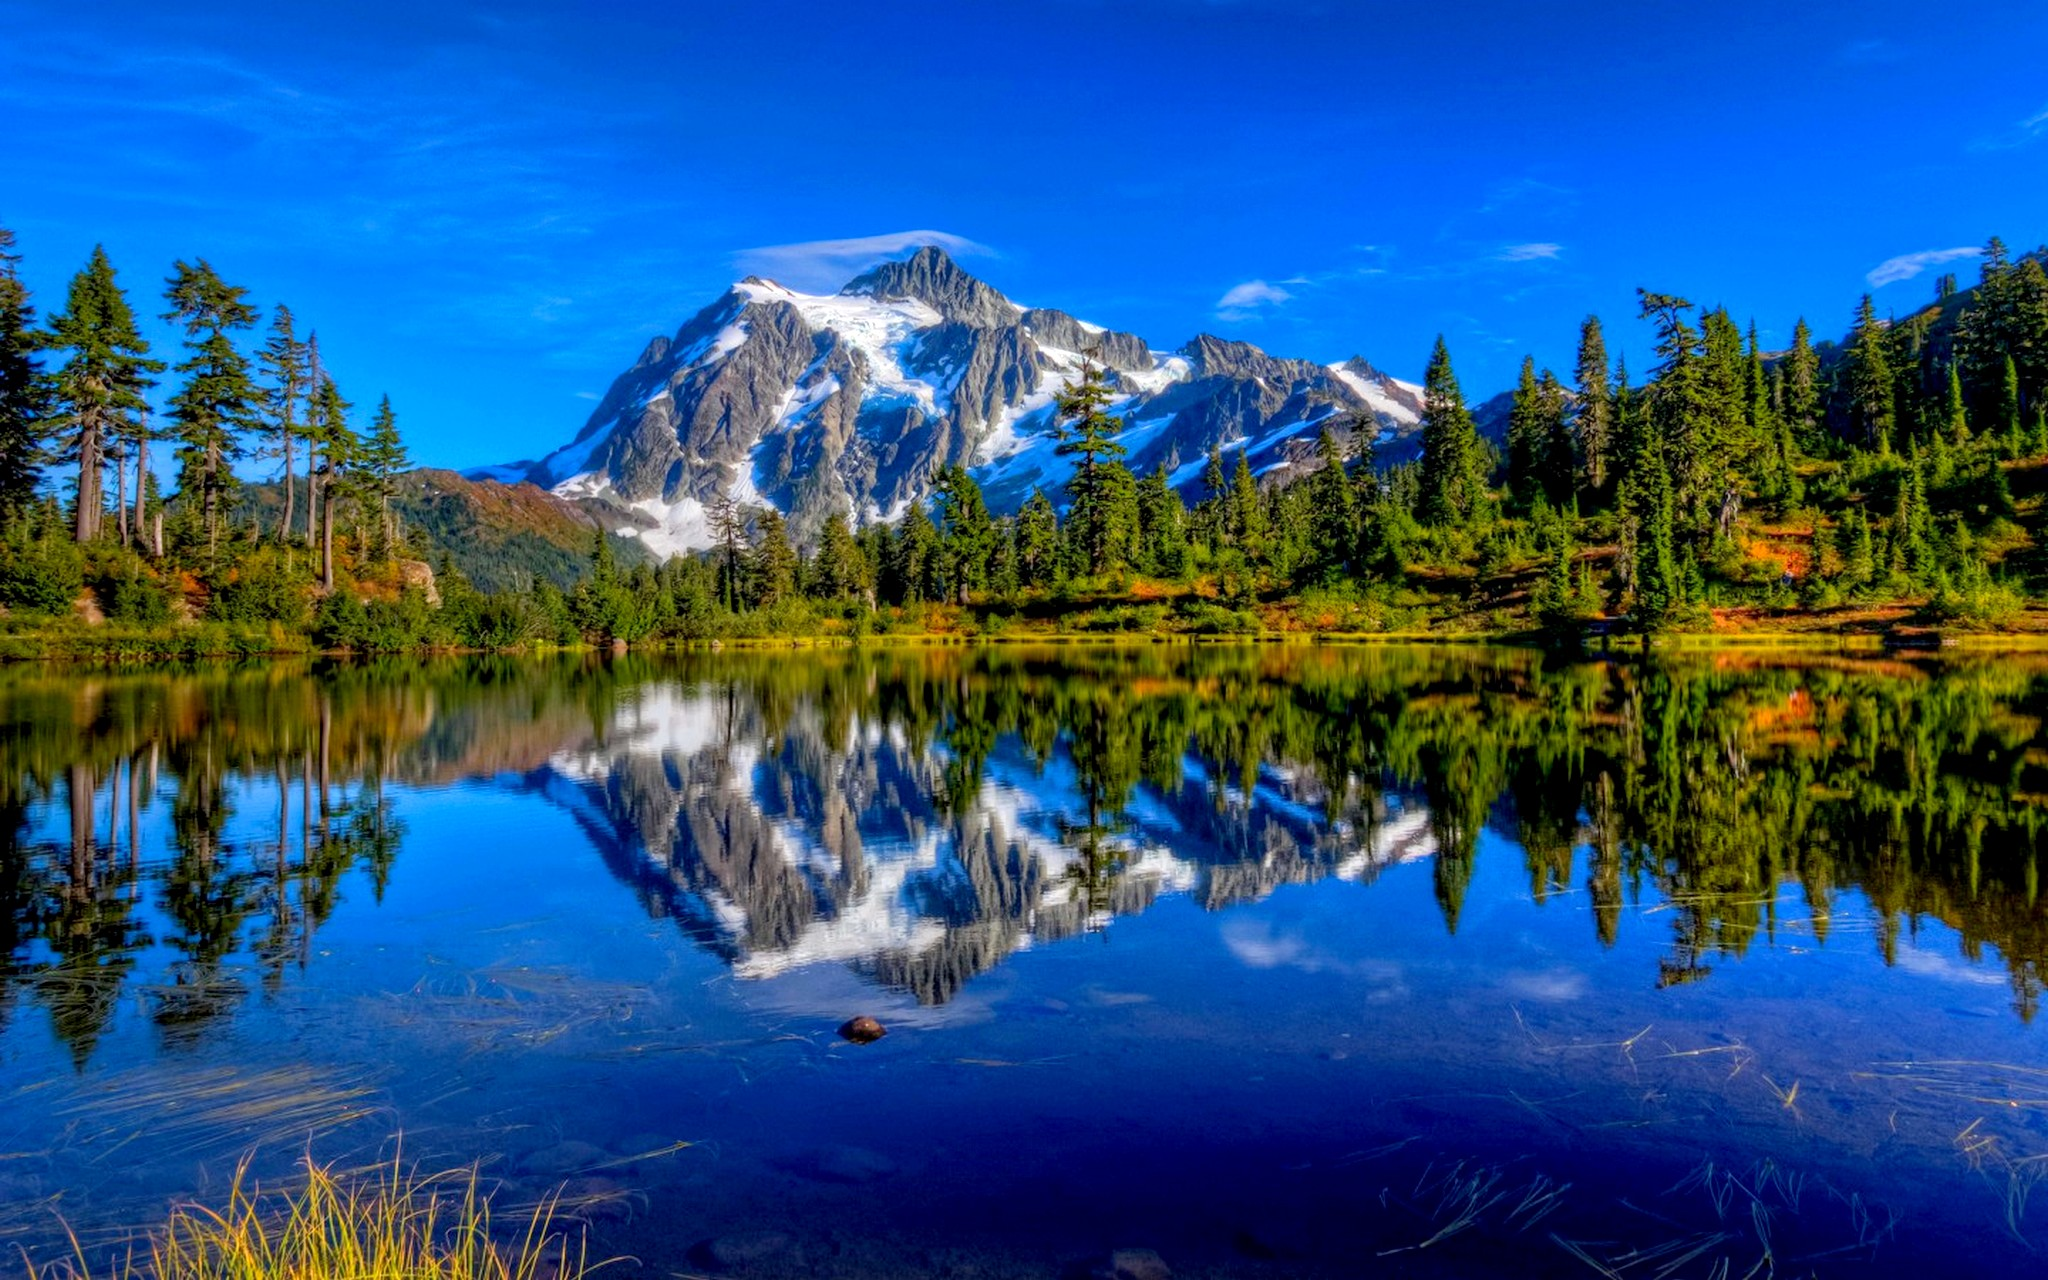 Mountain lake wallpaper wallpapersafari for Lakeview cabin download